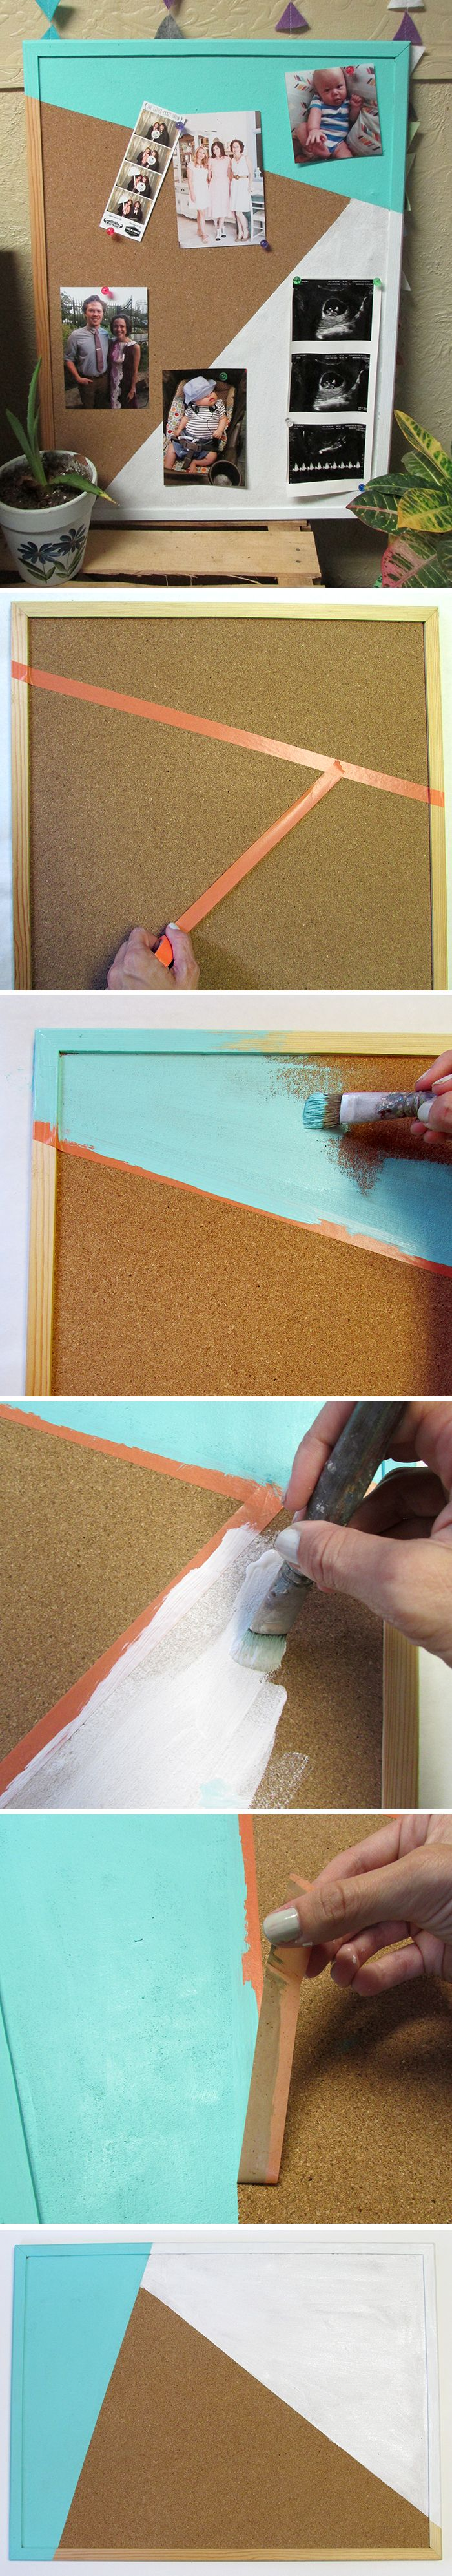 geometric corkboard diy